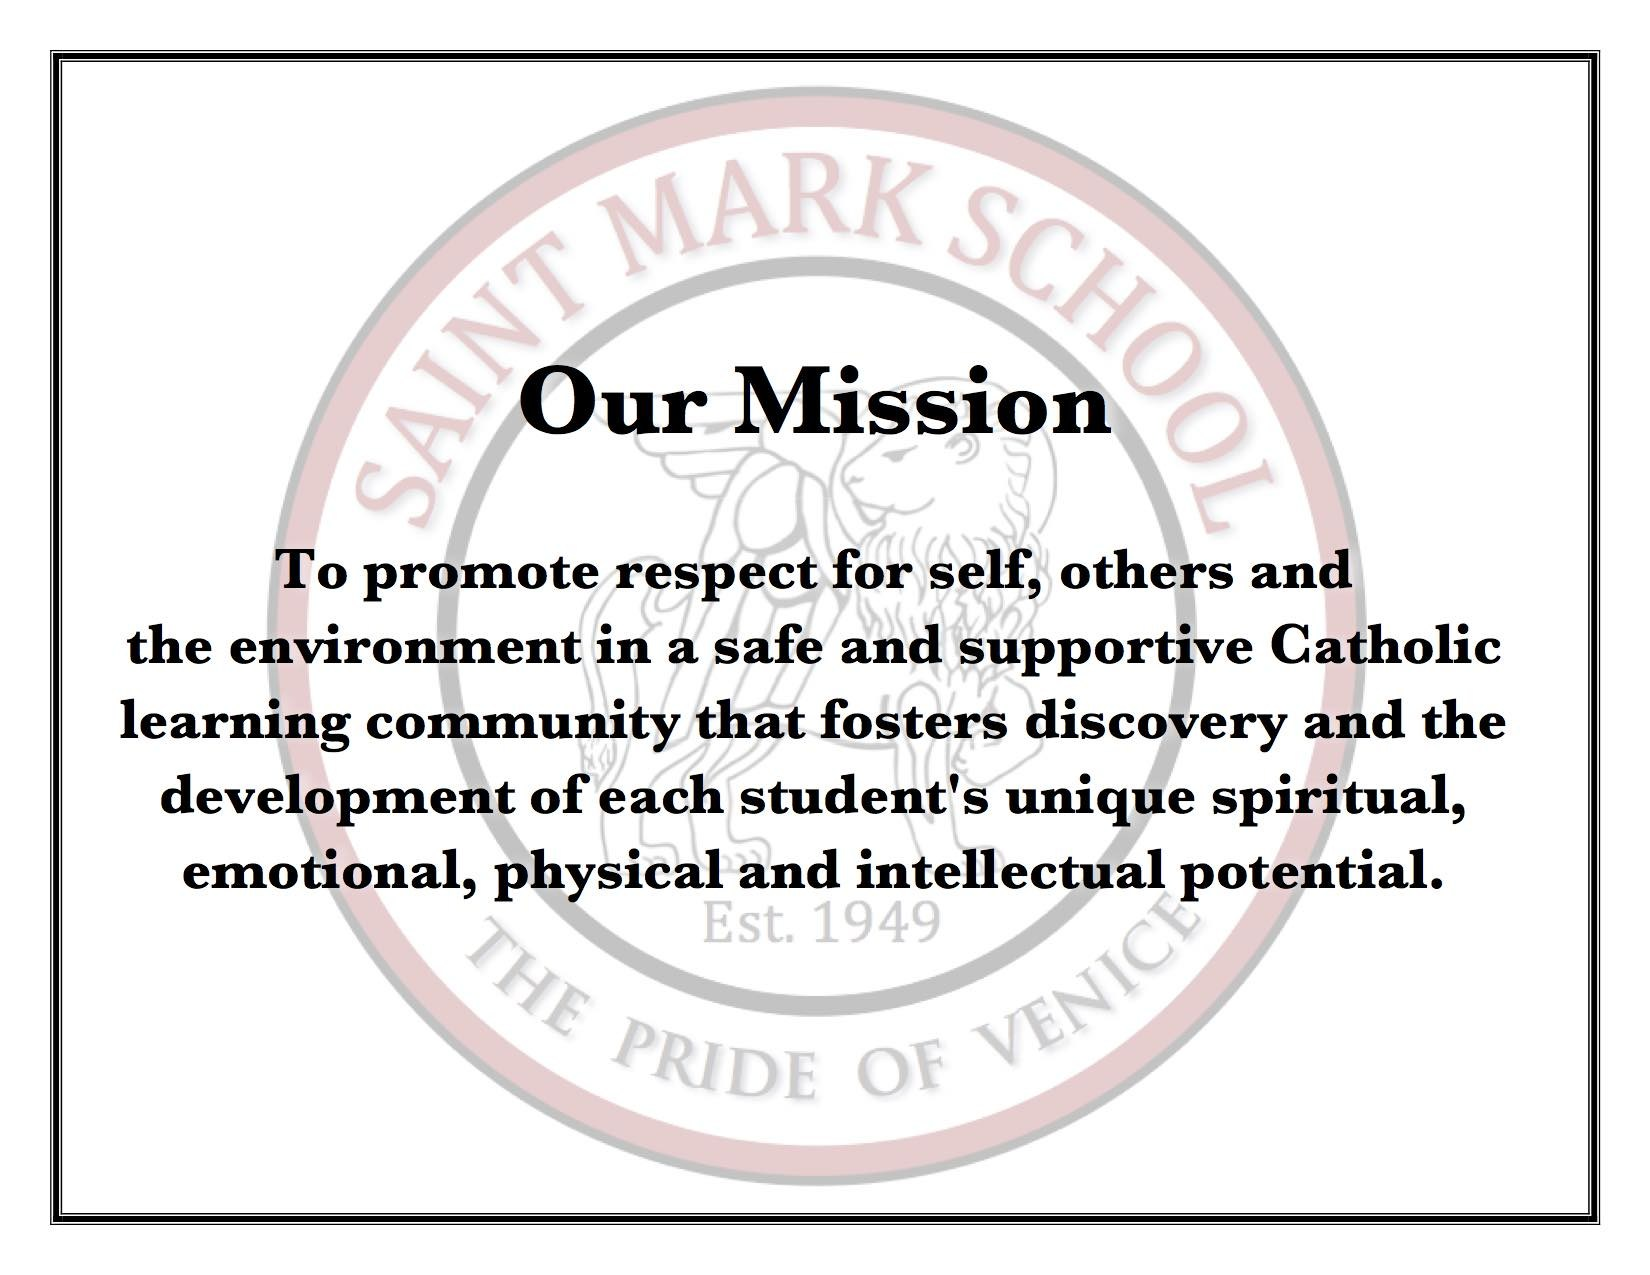 mission vision about us saint mark school